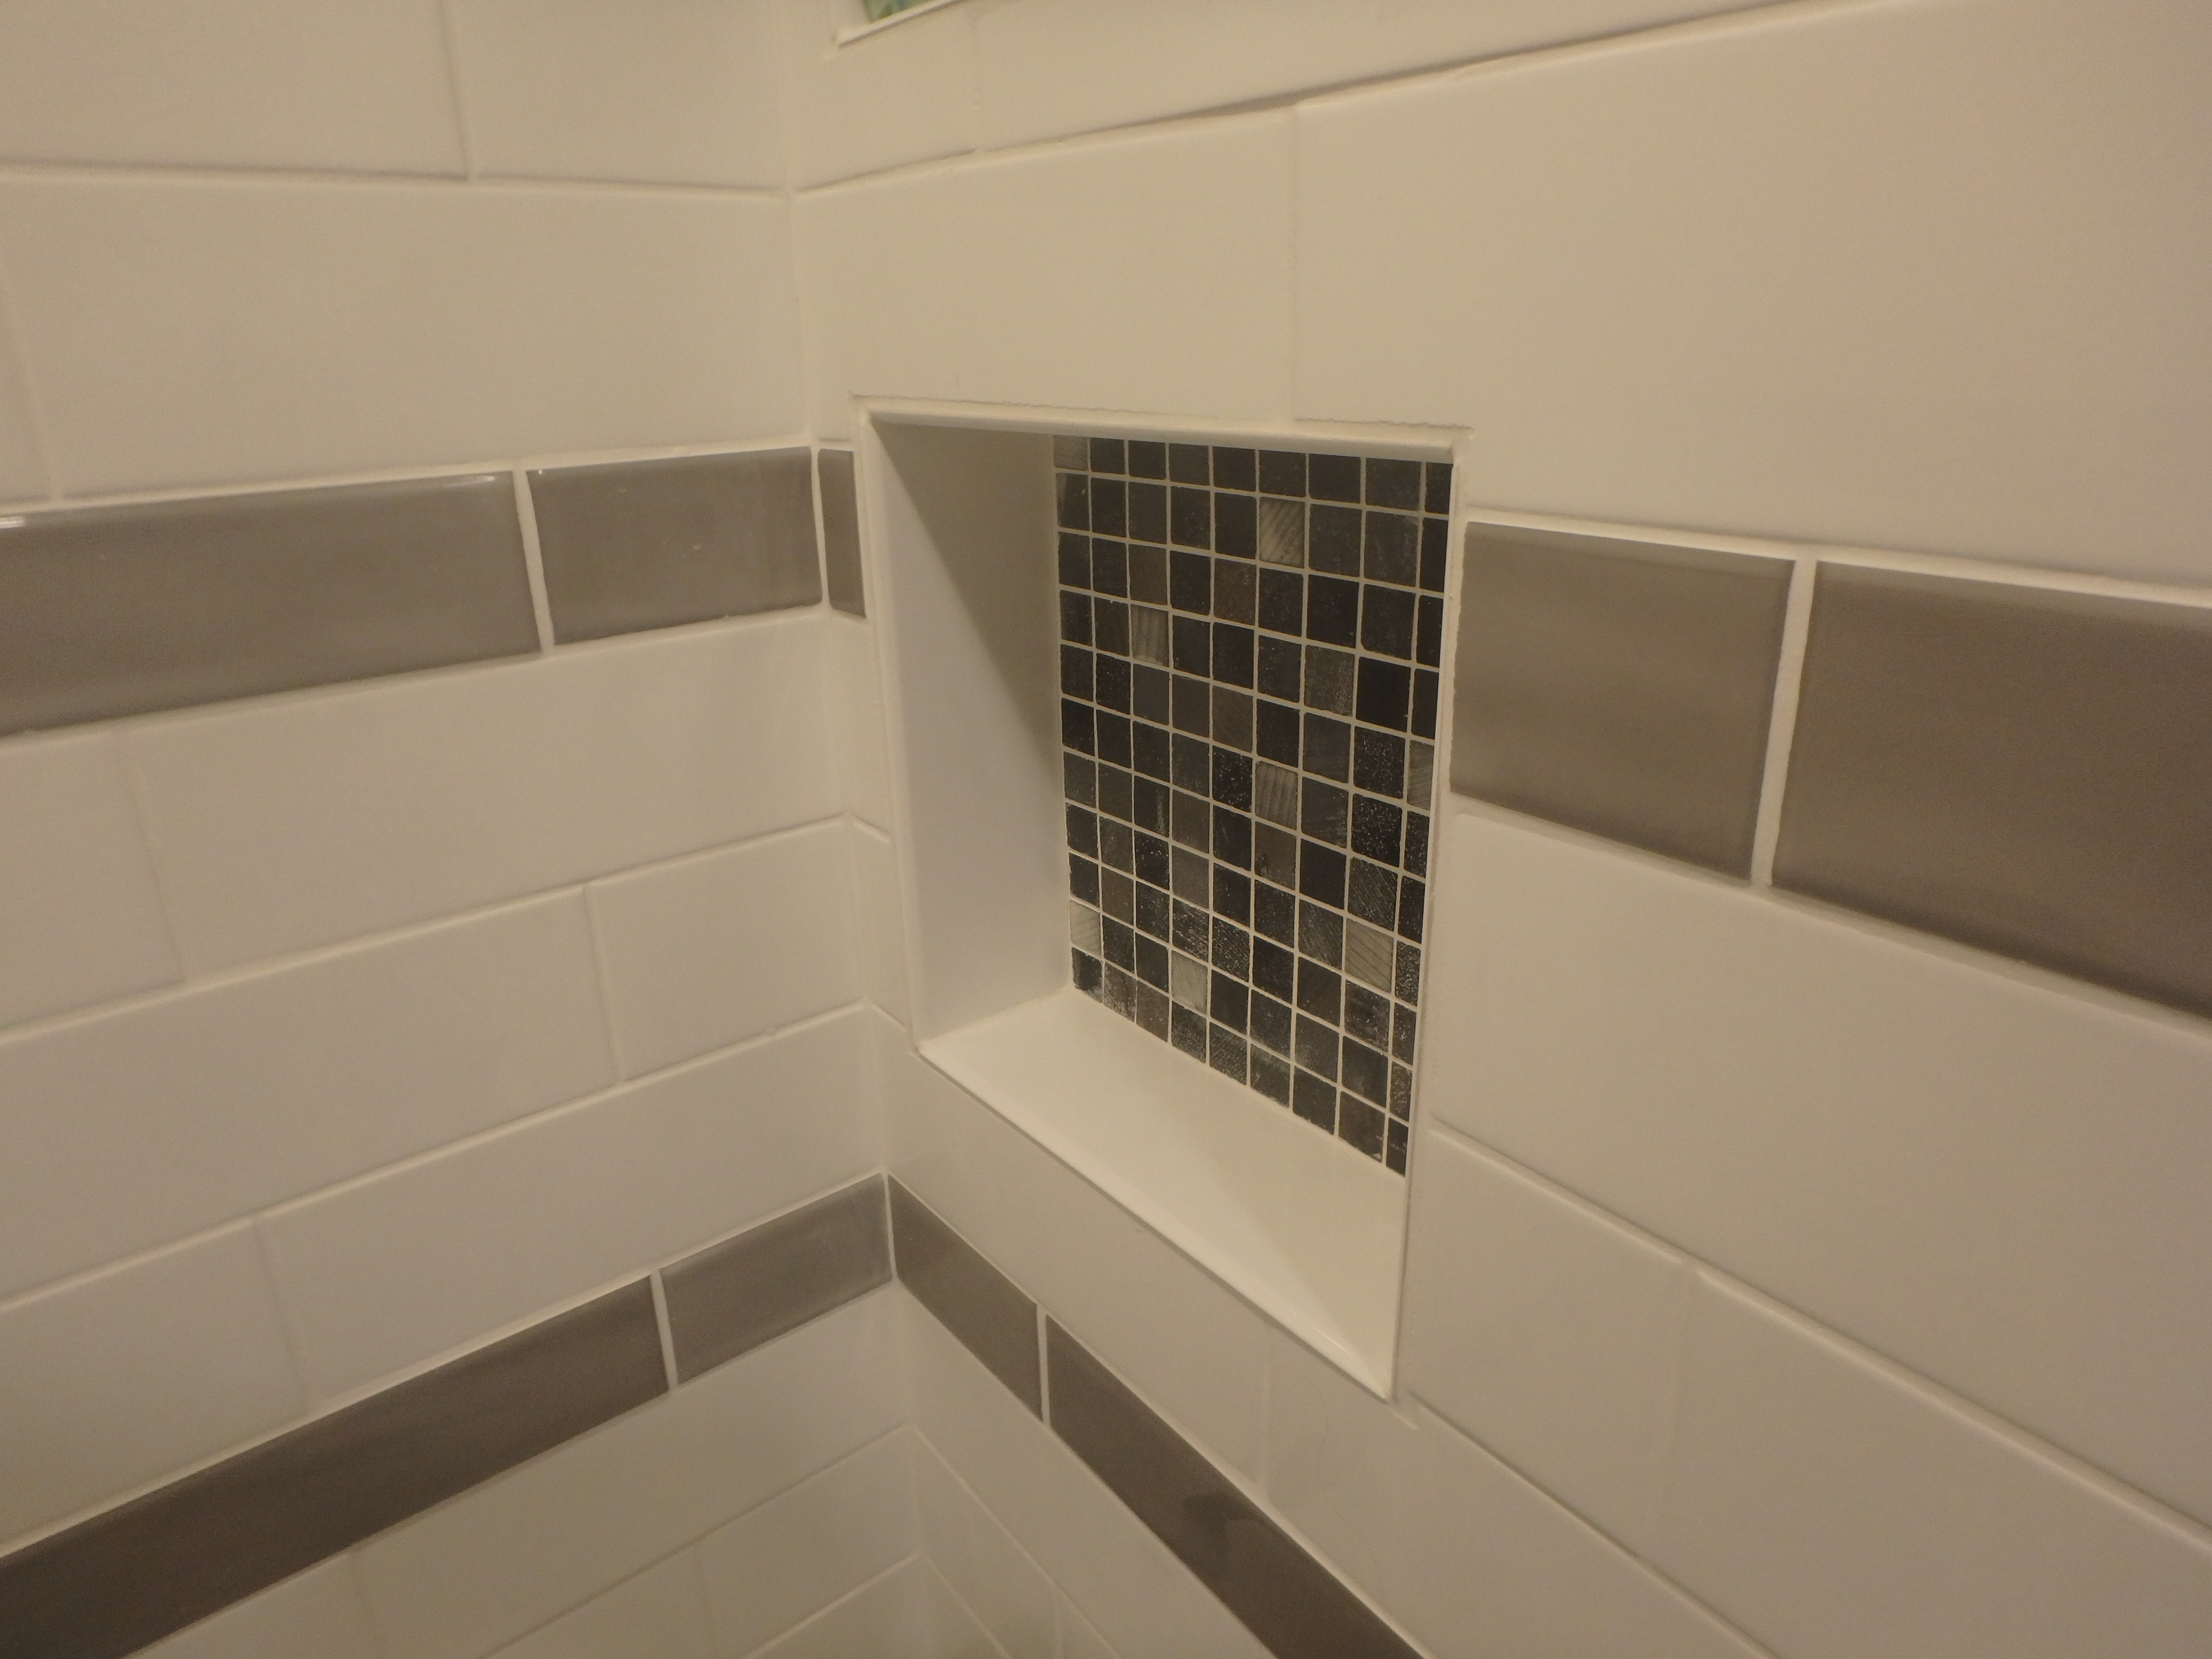 Shampoo Ledge Shower Remodeling